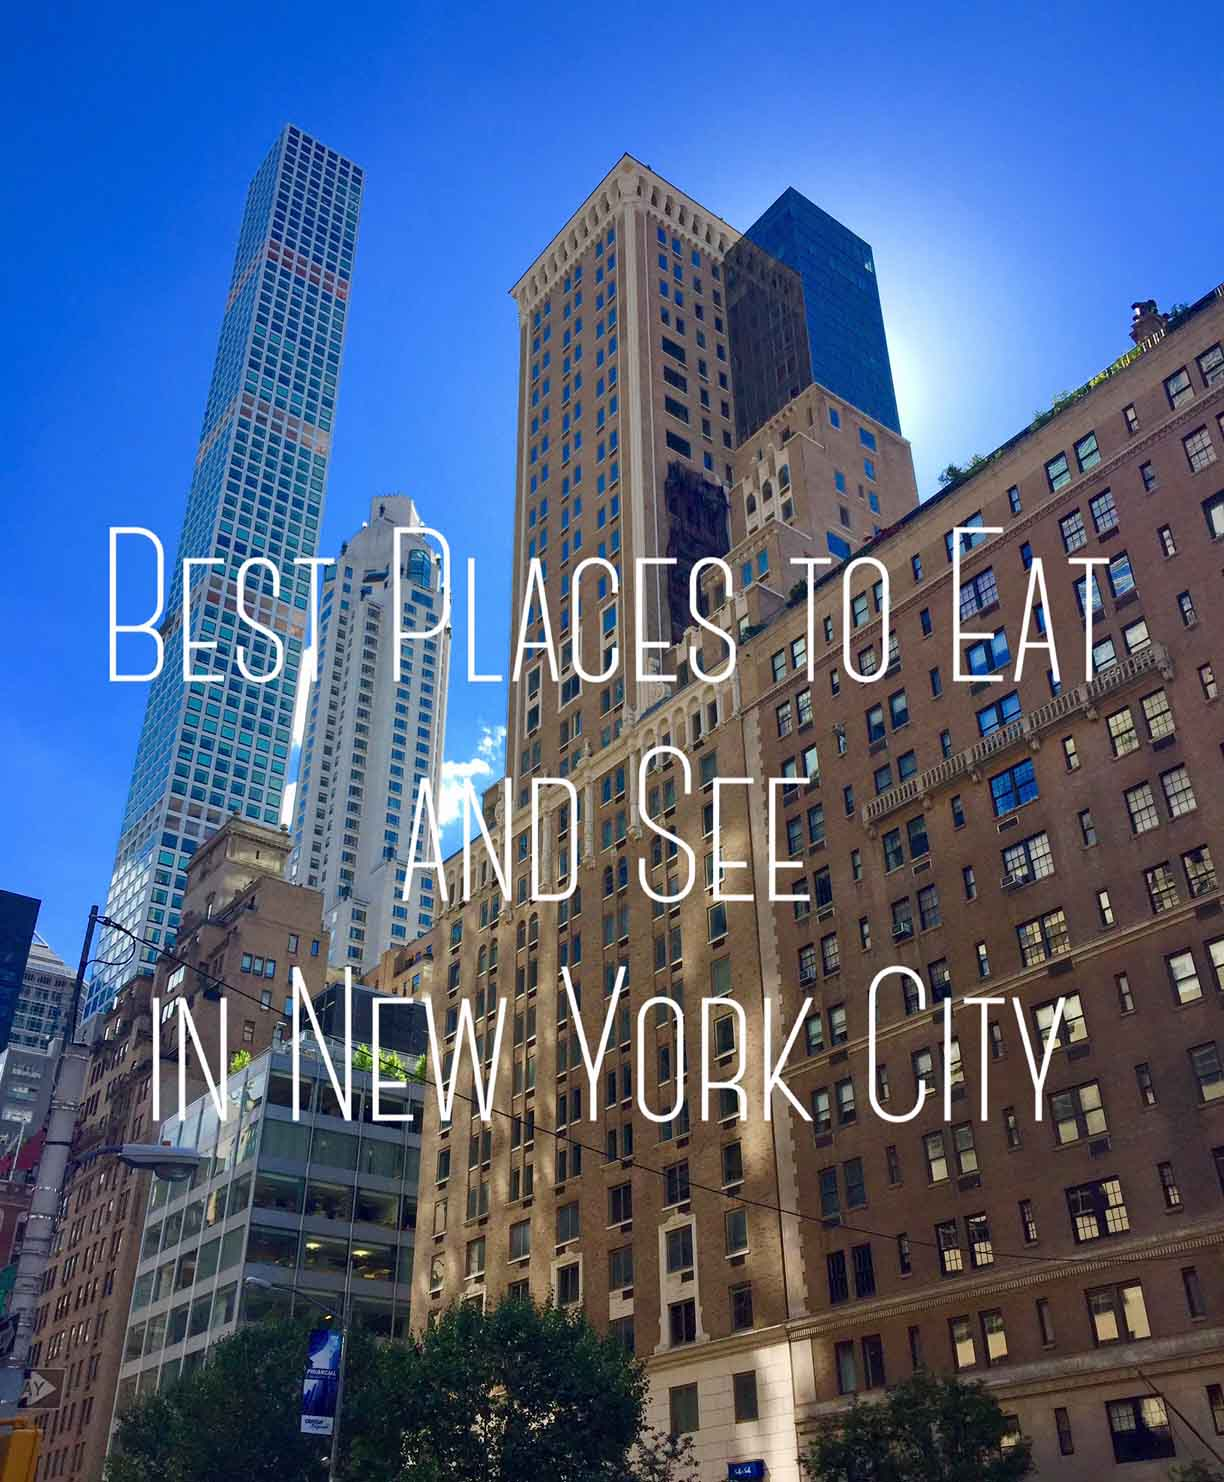 From New York City: Best Places To Eat And See In New York City